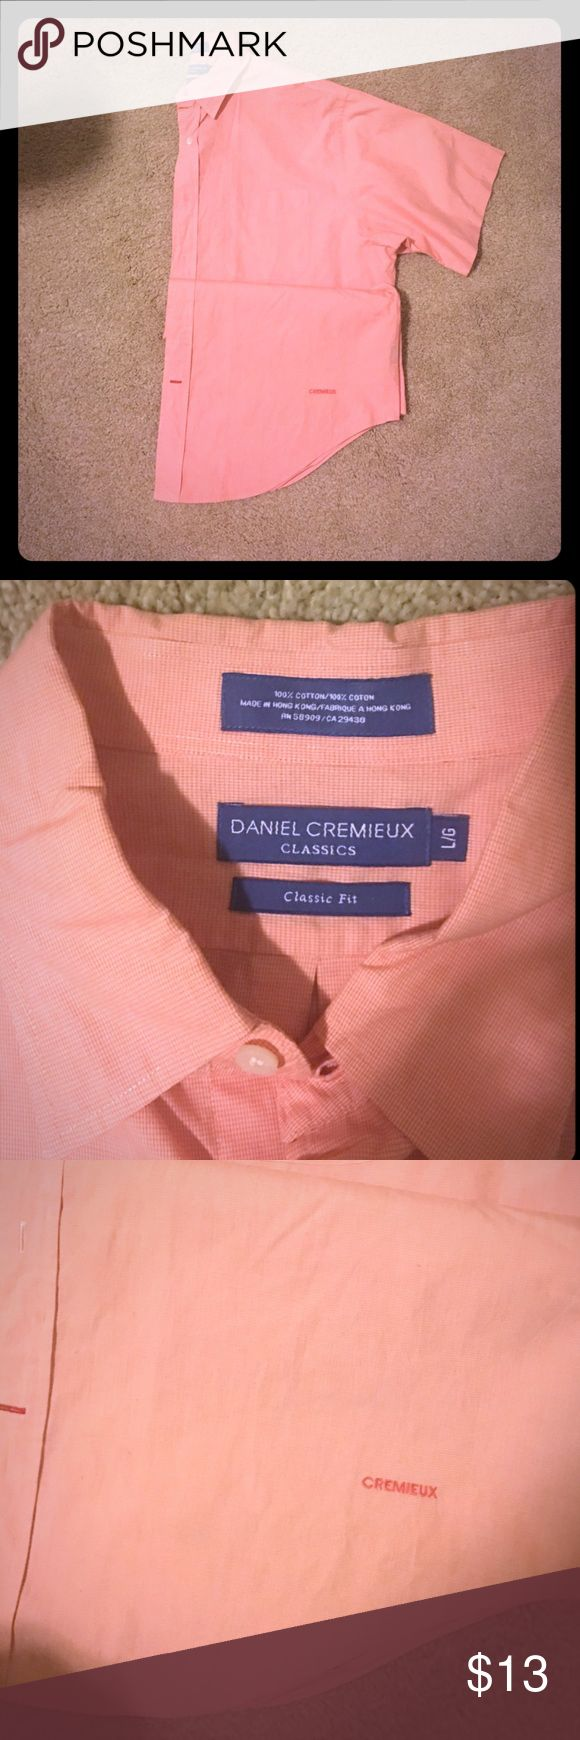 Daniel Cremieux Mens shirt Lovely orange and white plaid shirt , button down, short sleeve  Daniel cremieux Classic fit shirt Daniel Cremieux Shirts Casual Button Down Shirts